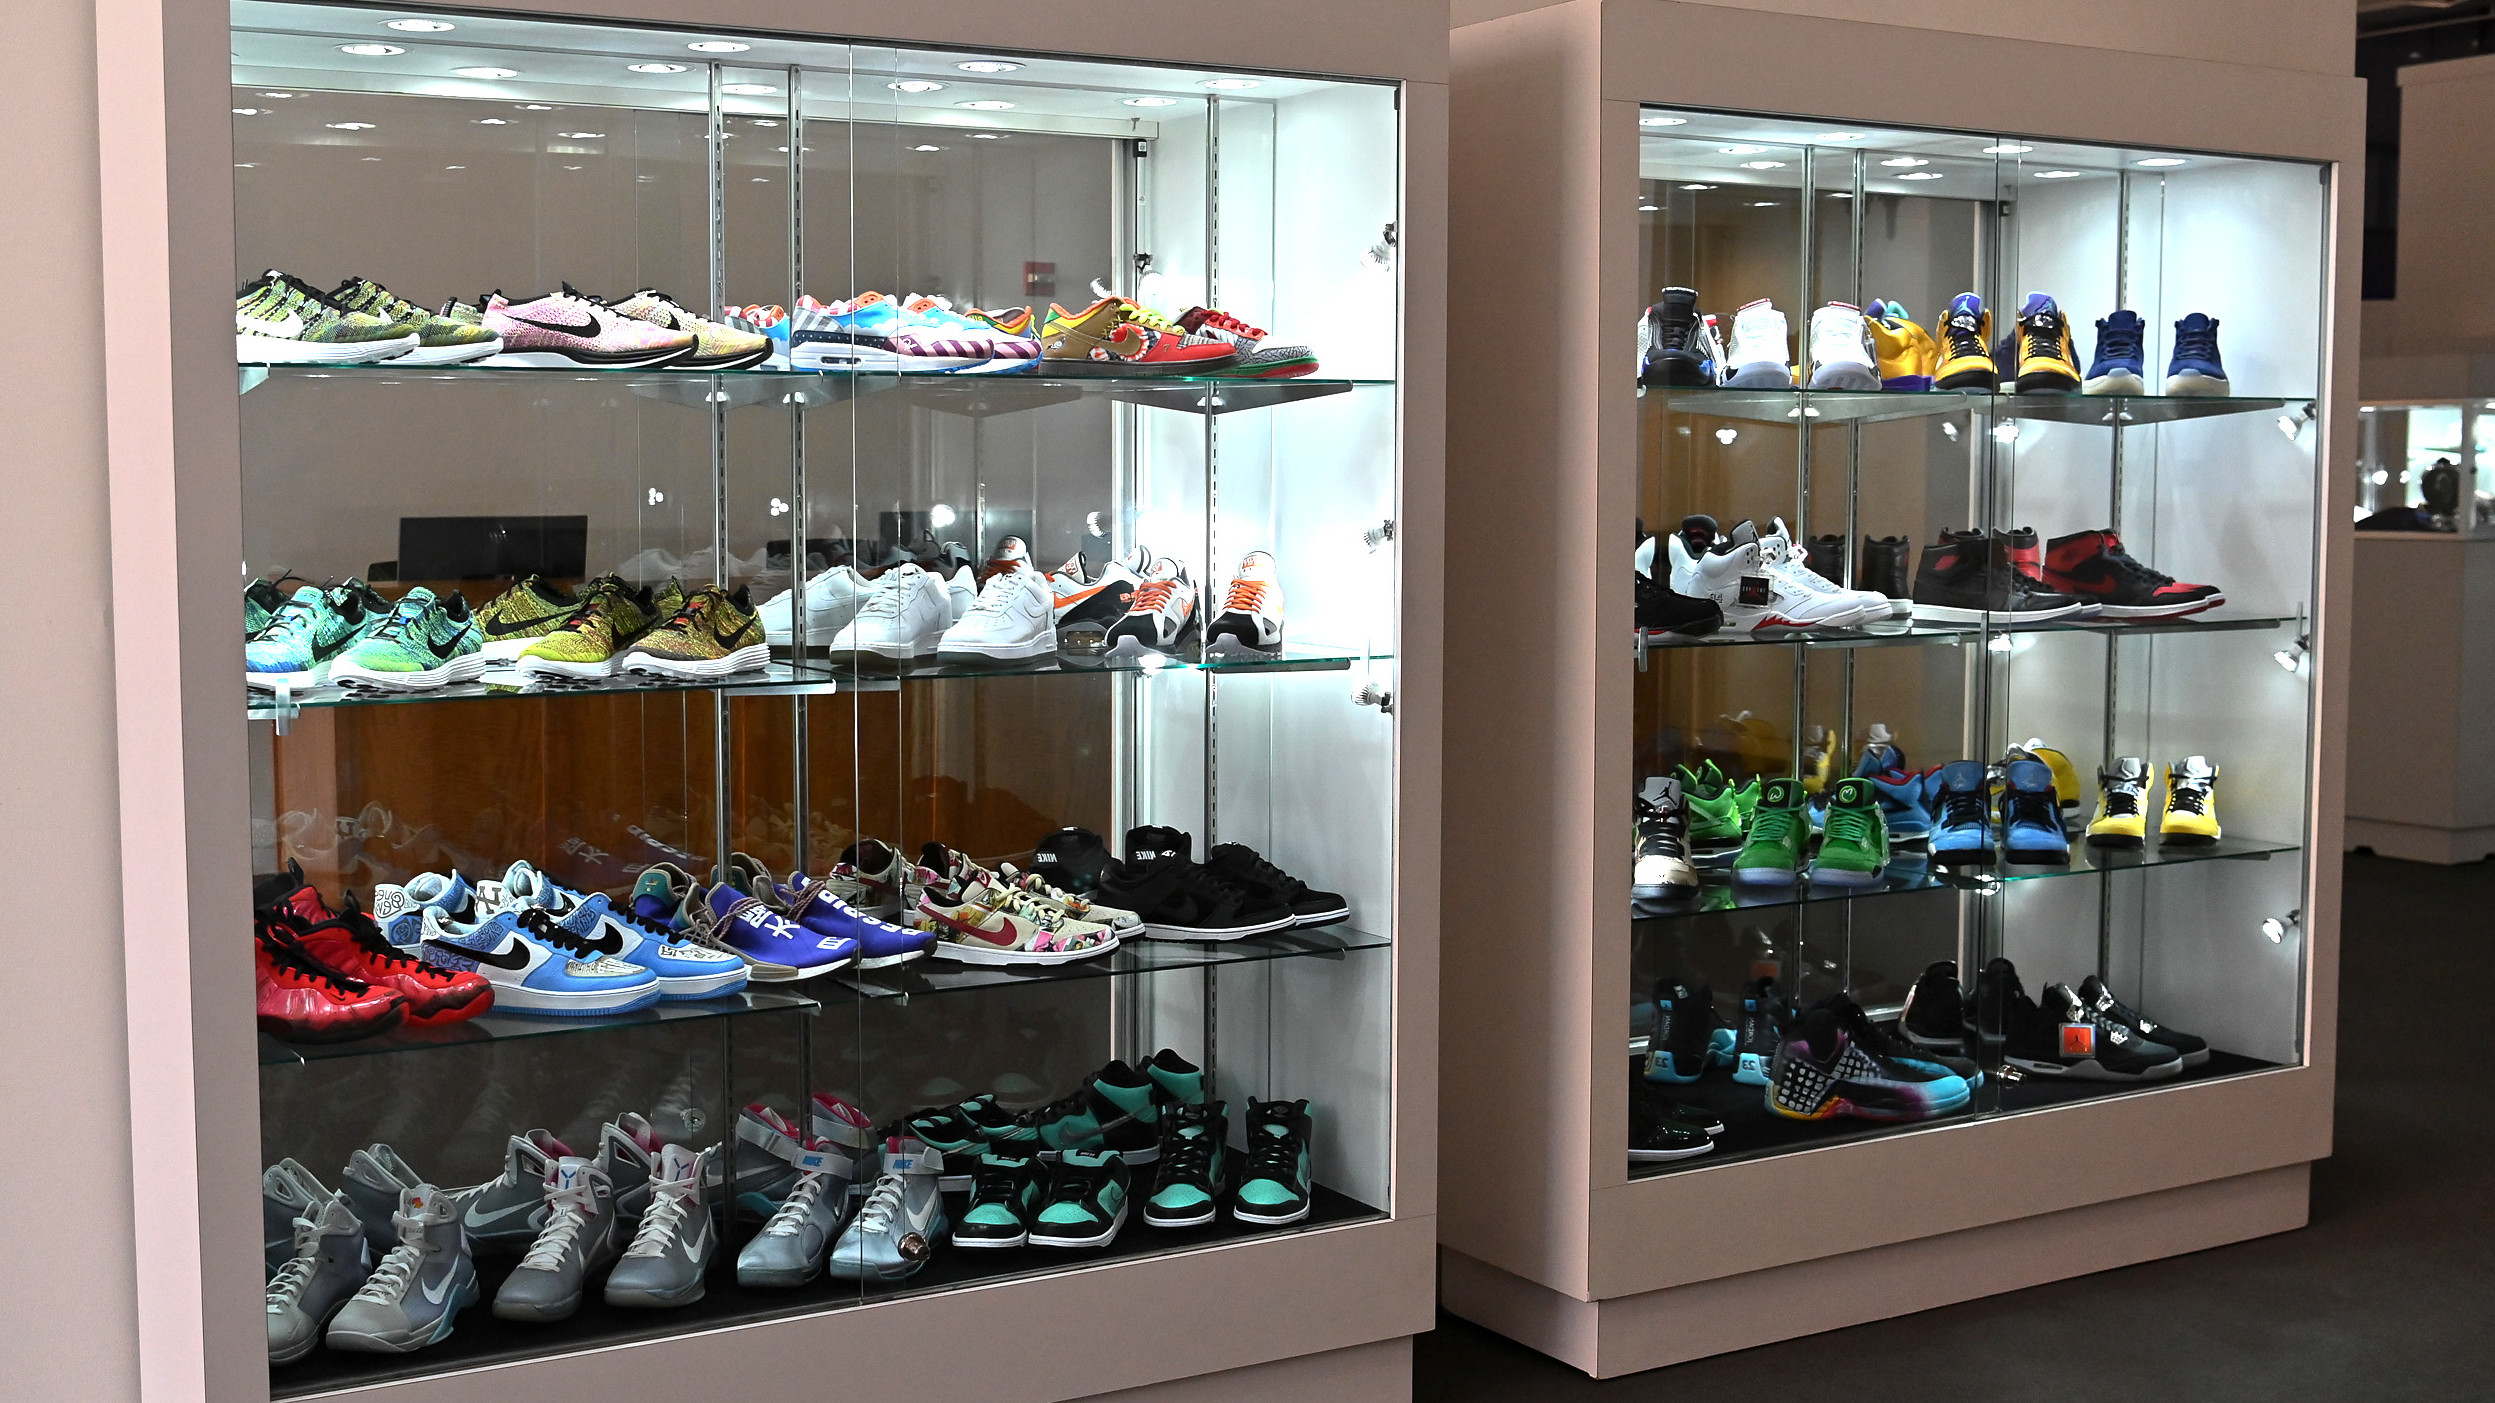 Why This 61-Year-Old Investor Spent $1.3 Million on Sneakers